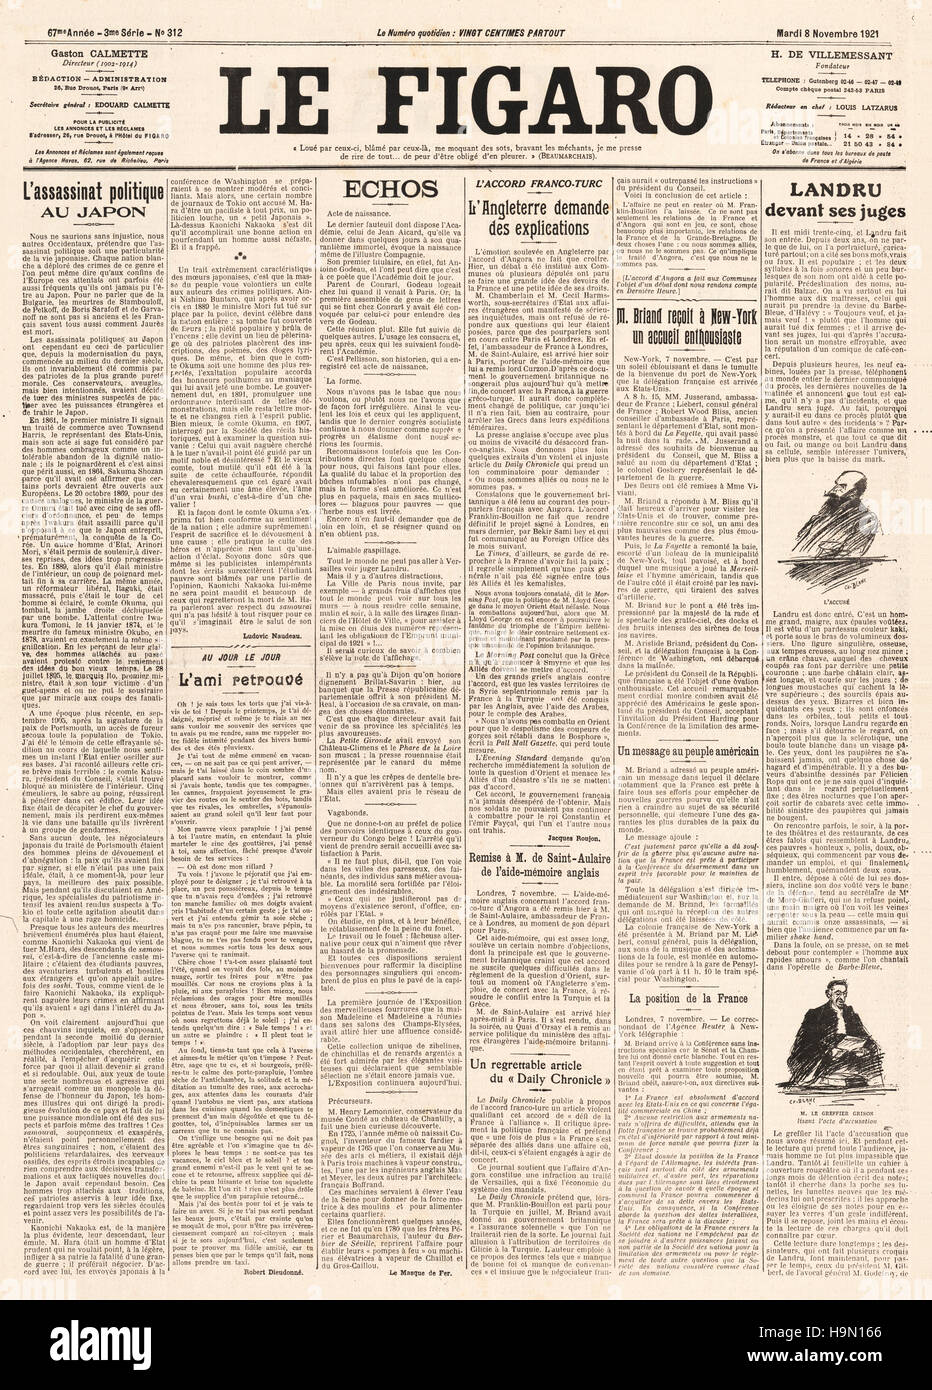 1921 Le Figaro front page Assasination of Japanese Prime Minister, Hara Takashi and trial of Henri Landru - Stock Image